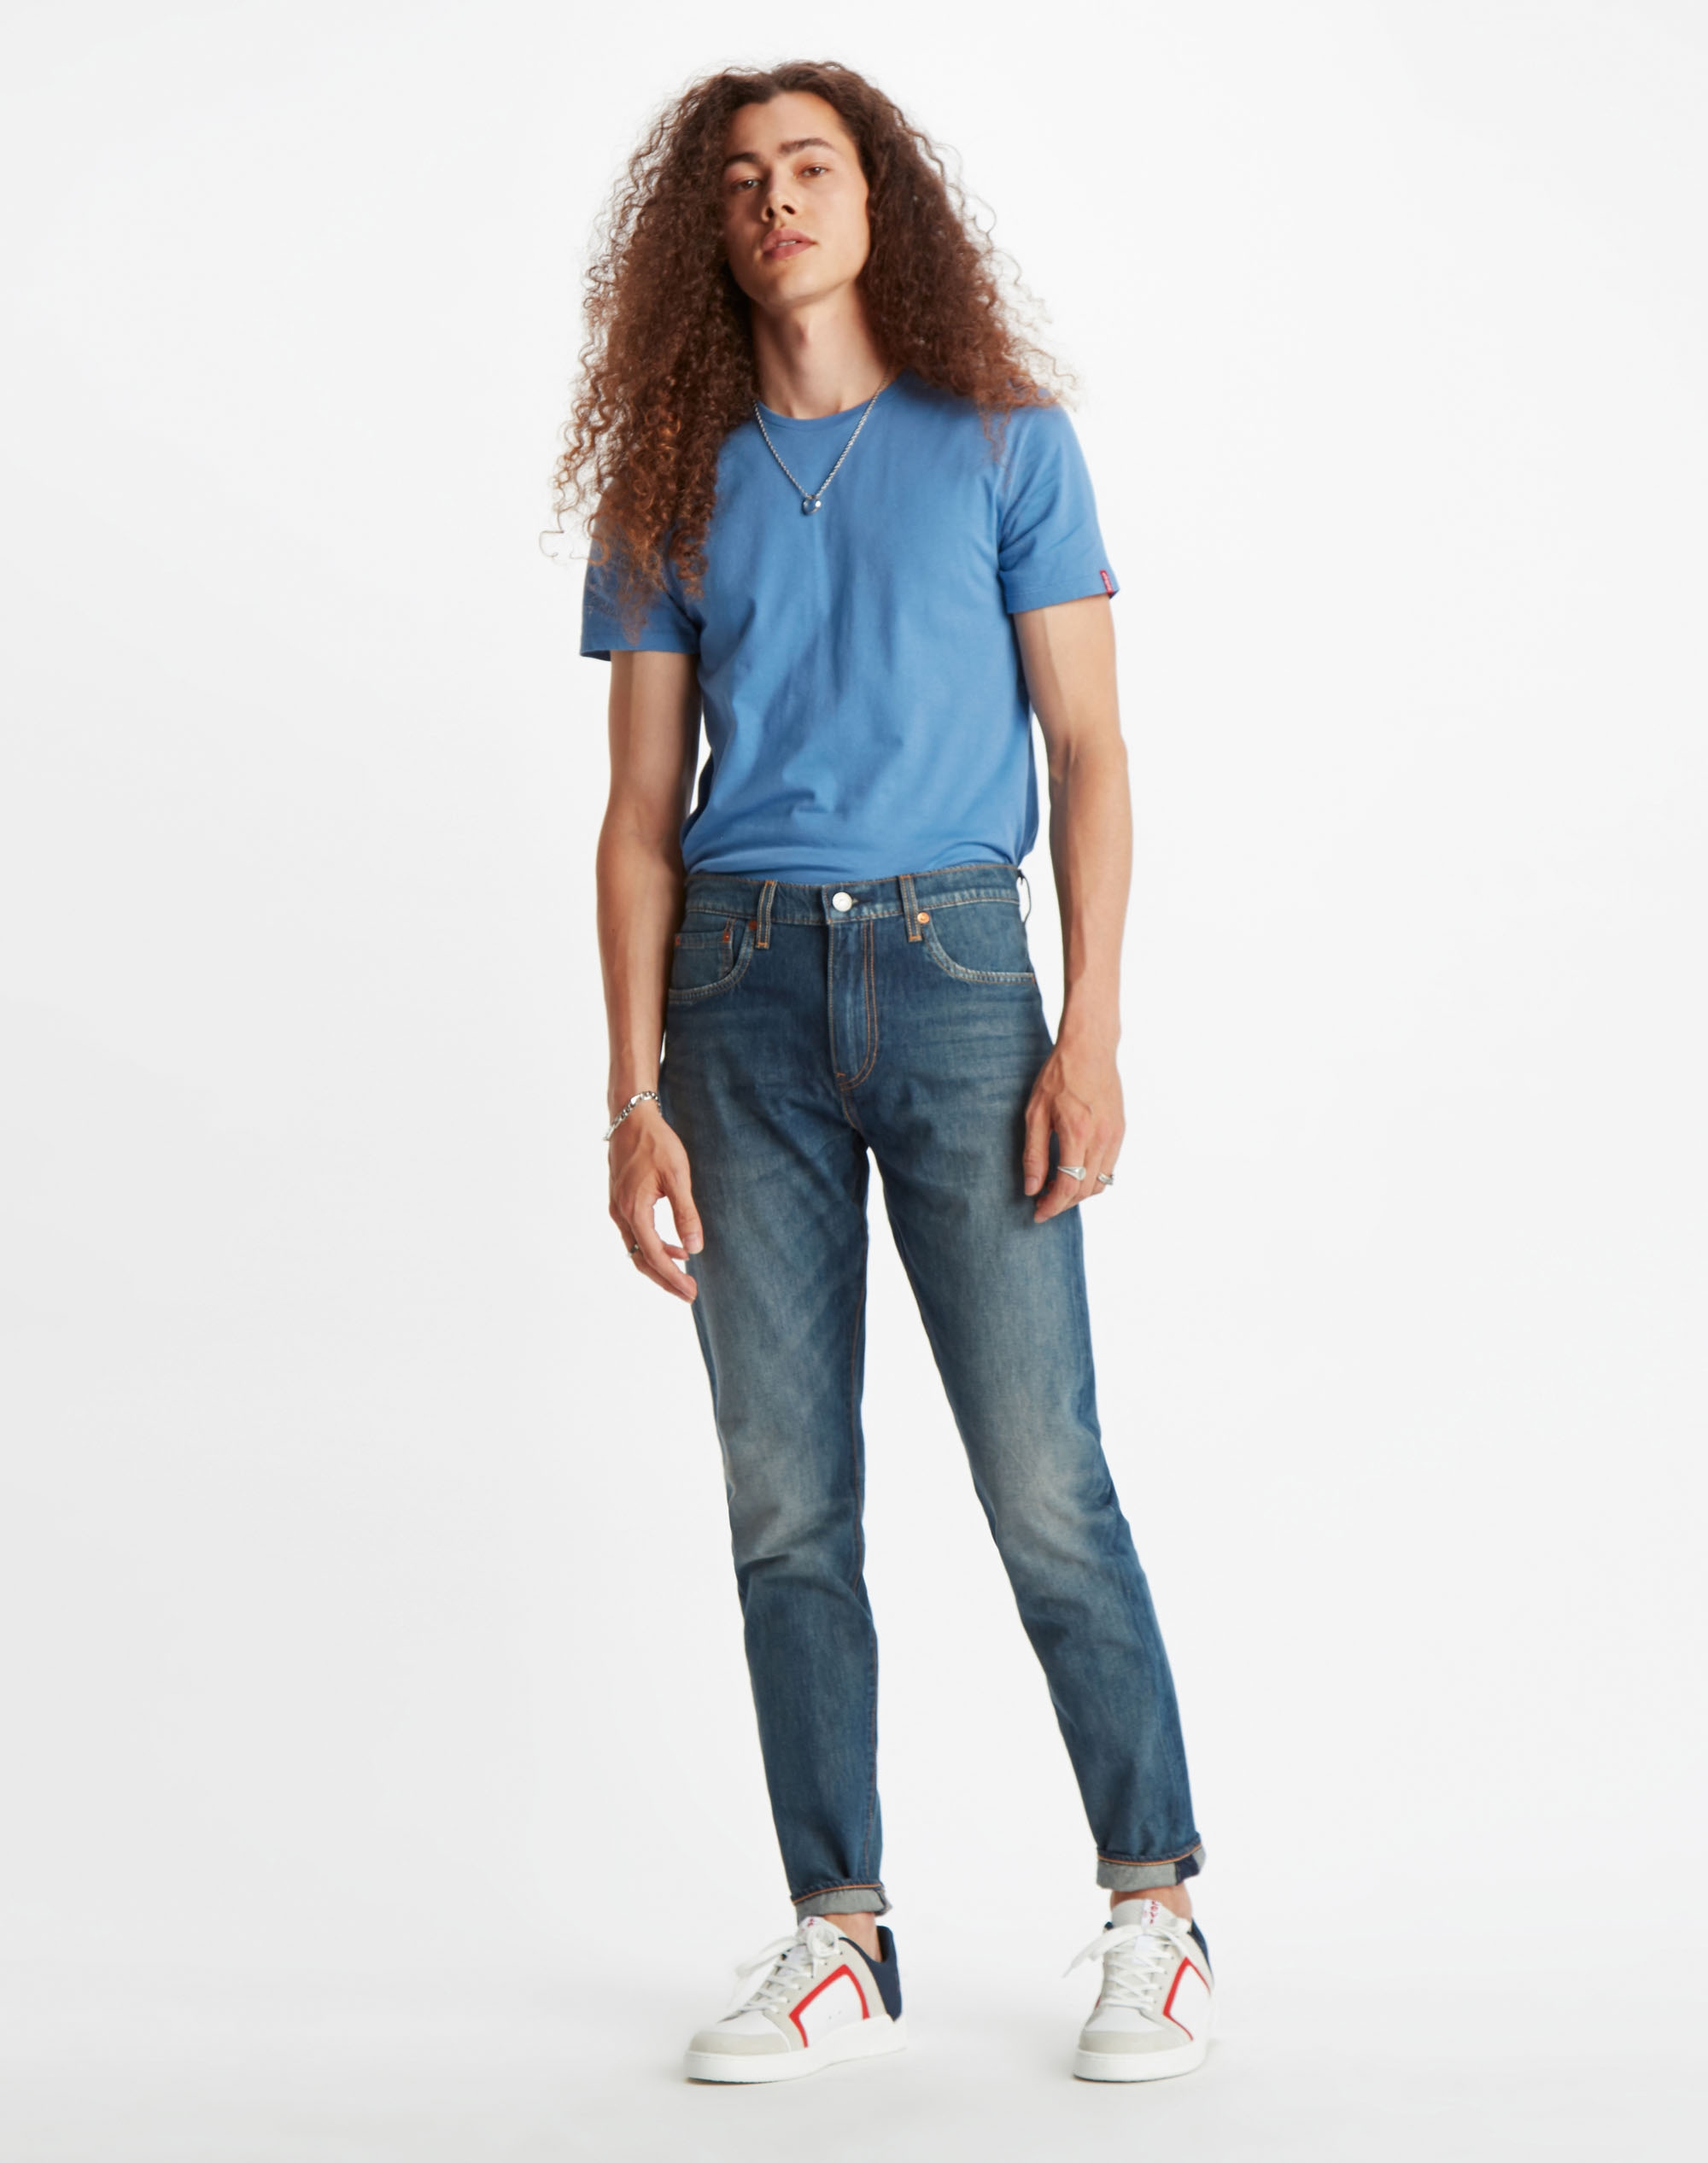 Levi's 512 slim taper pantalons texans d'home 28833-0565 color blau mig